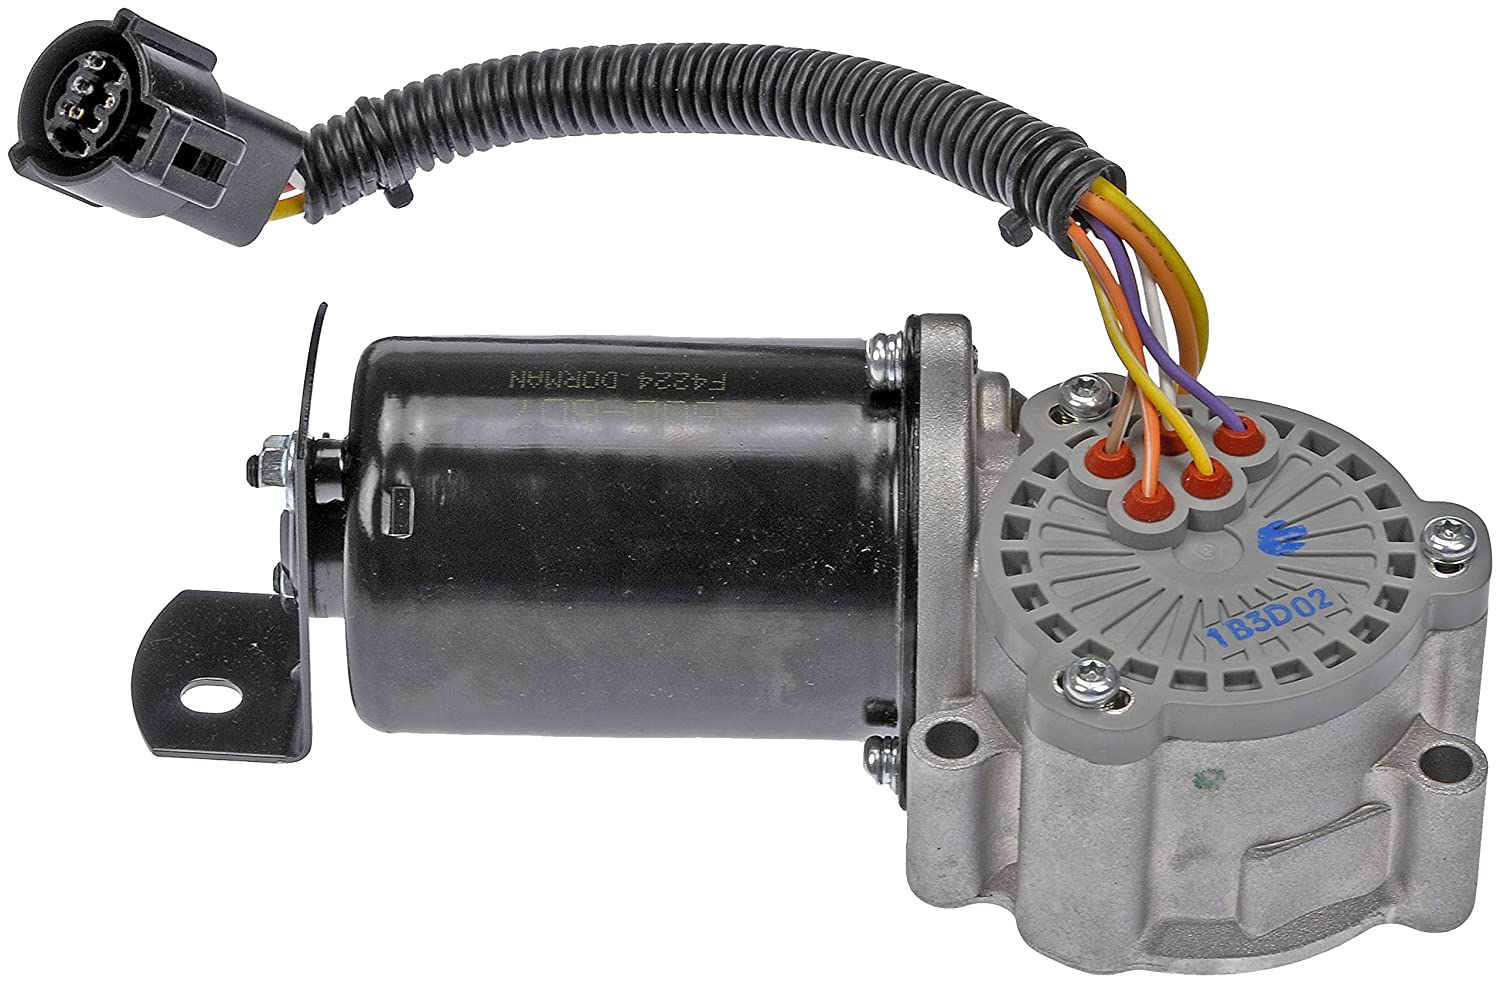 81SfkeRyWnL._SL1500_ amazon com dorman 600 807 transfer case motor automotive  at aneh.co